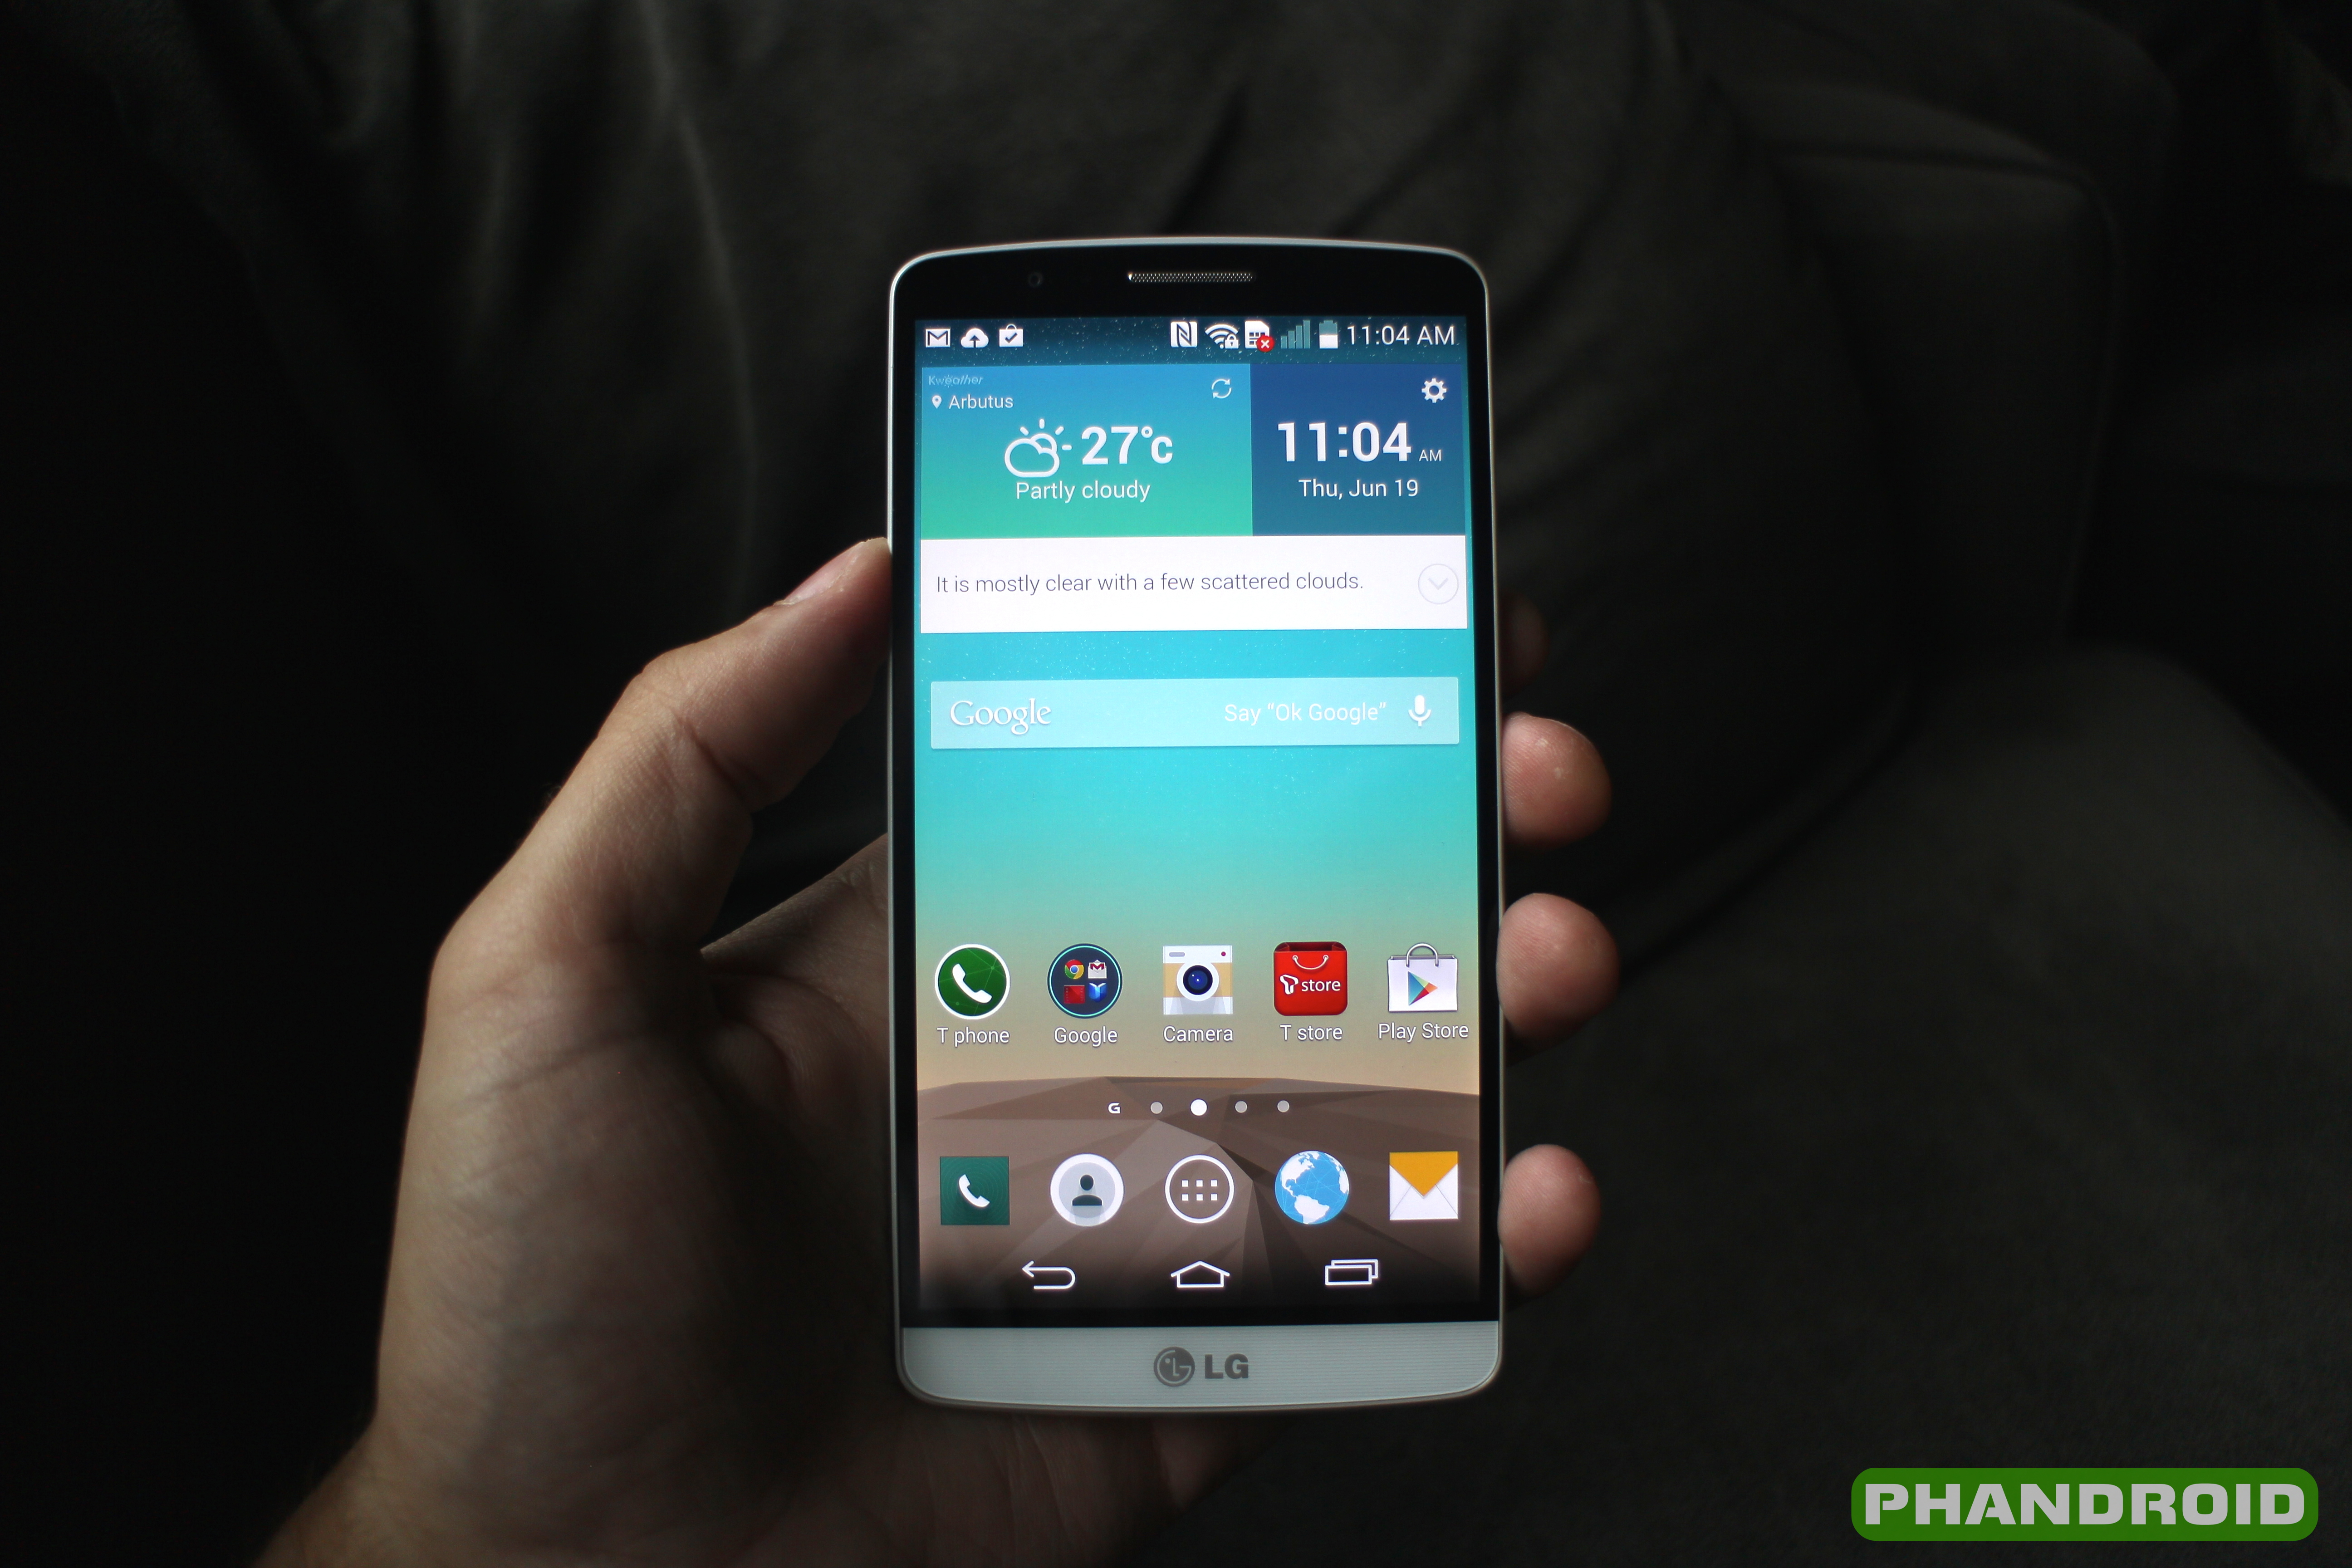 Jual Lg G3 Metallic Black Update 2018 Tcash Vaganza 28 Produk Ukm Bumn Topi Batik T Mobile Presales Begin Ahead Of July 16th Launch Date Has Announced